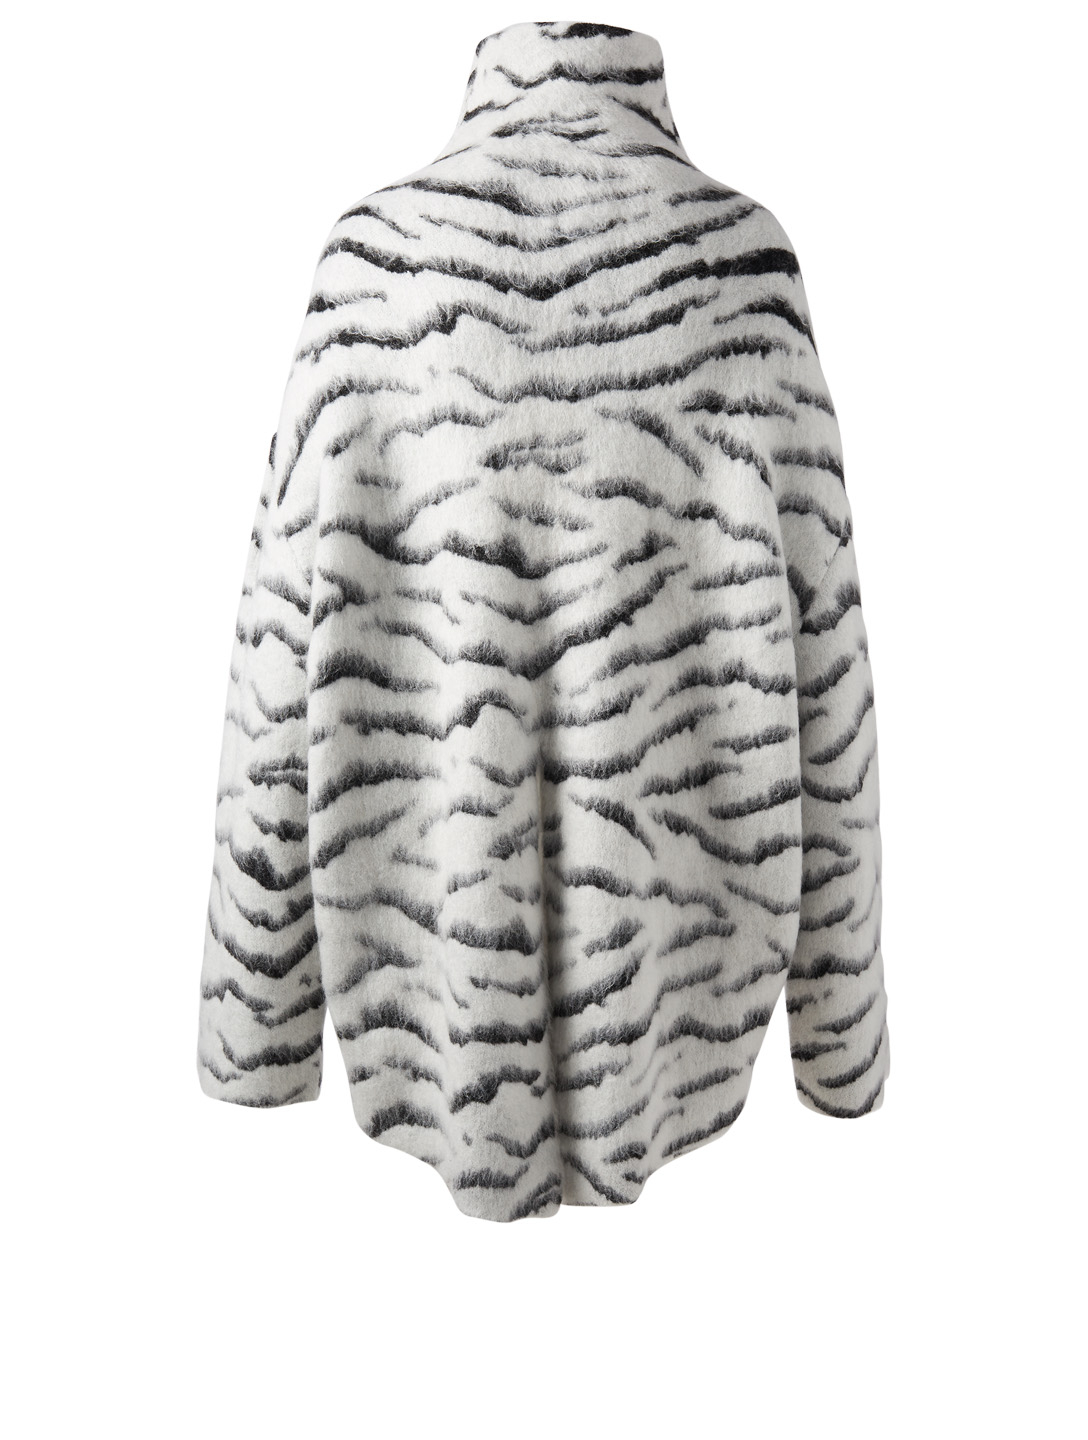 GIVENCHY Oversized Zebra Jacquard Sweater Women's Multi